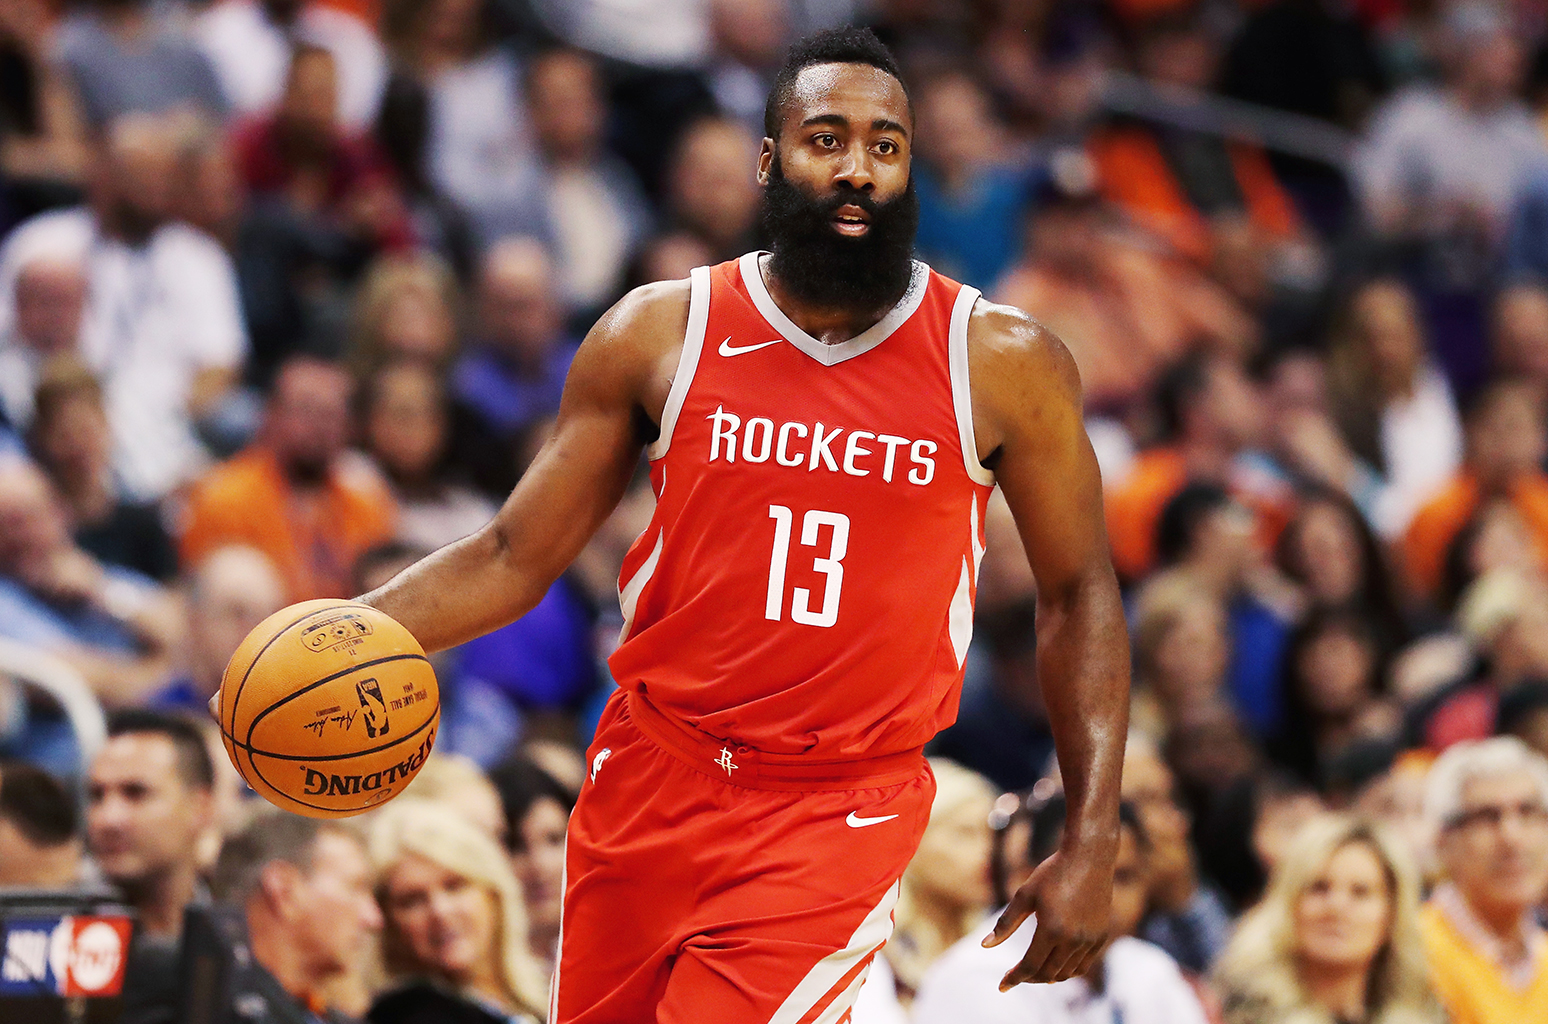 ORLANDO (FNN SPORTS) - The Houston Rockets led a balanced attack, defeating the Orlando Magic at Amway Center 1/3/18. Photo: RealSports101.com.